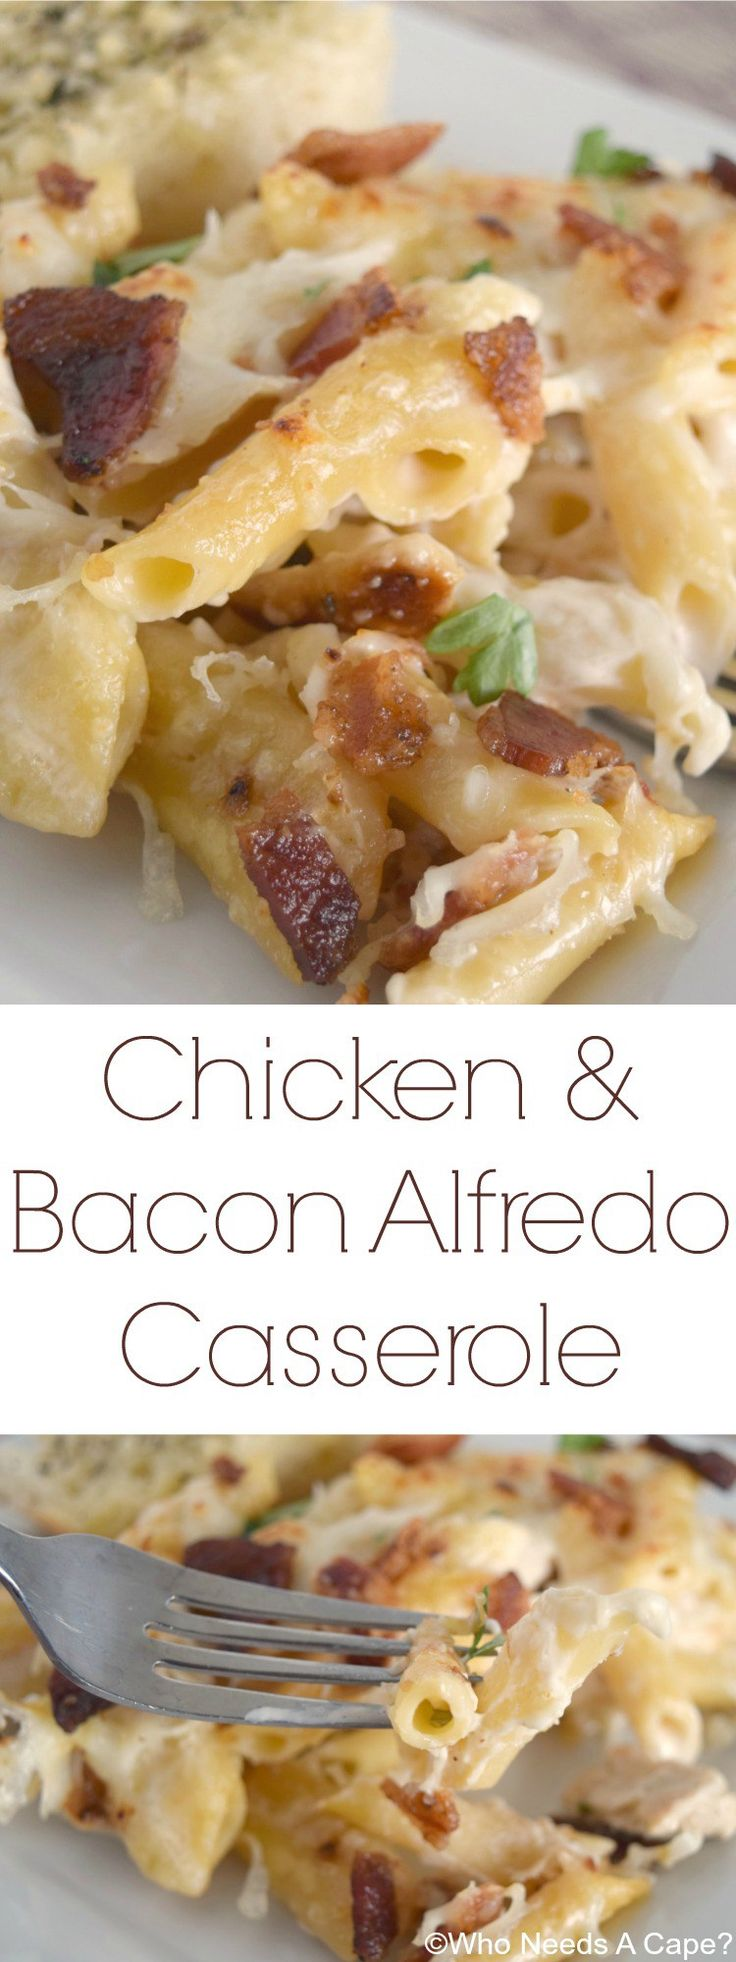 Chicken & Bacon Alfredo Casserole, a wonderfully comforting dish that has layers of Alfredo goodness. Comfort food at its best! {pinned over 2.7K times}